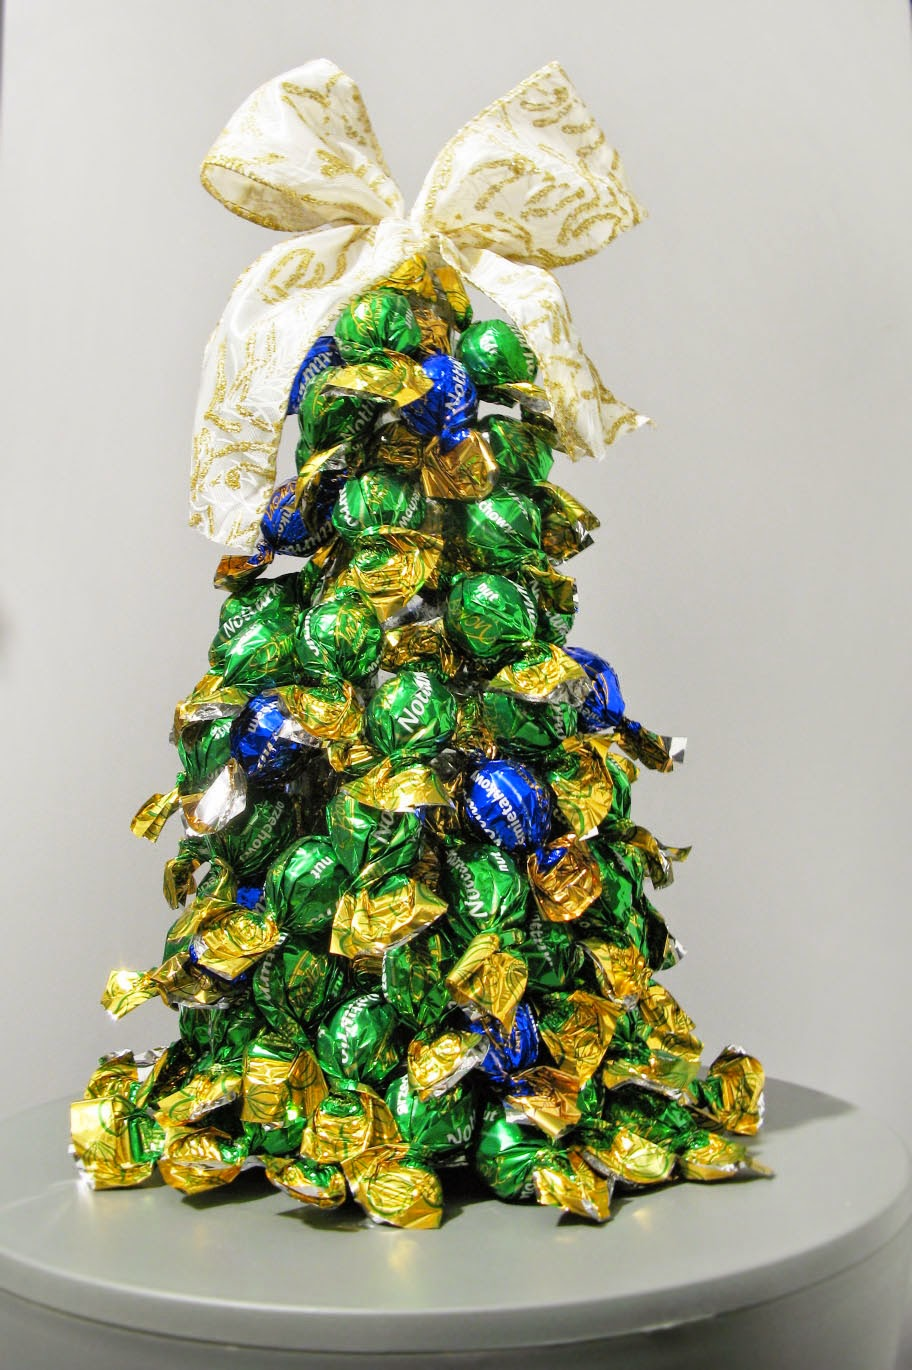 Chritmas Tree Made of Candies